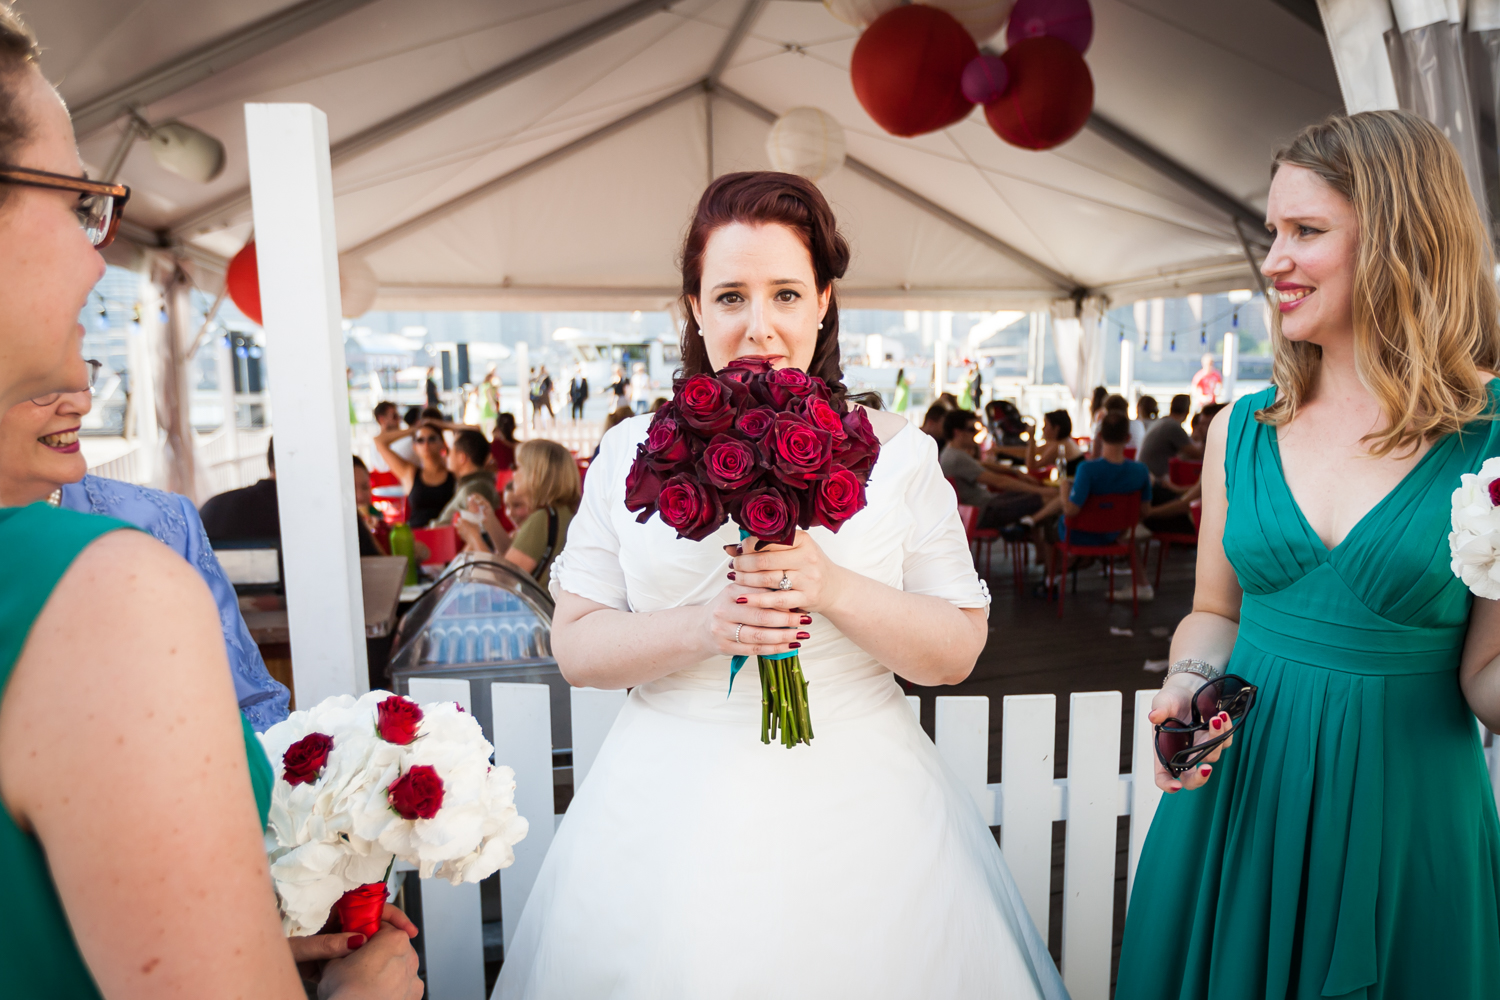 Bride with bouquet of roses between bridesmaids